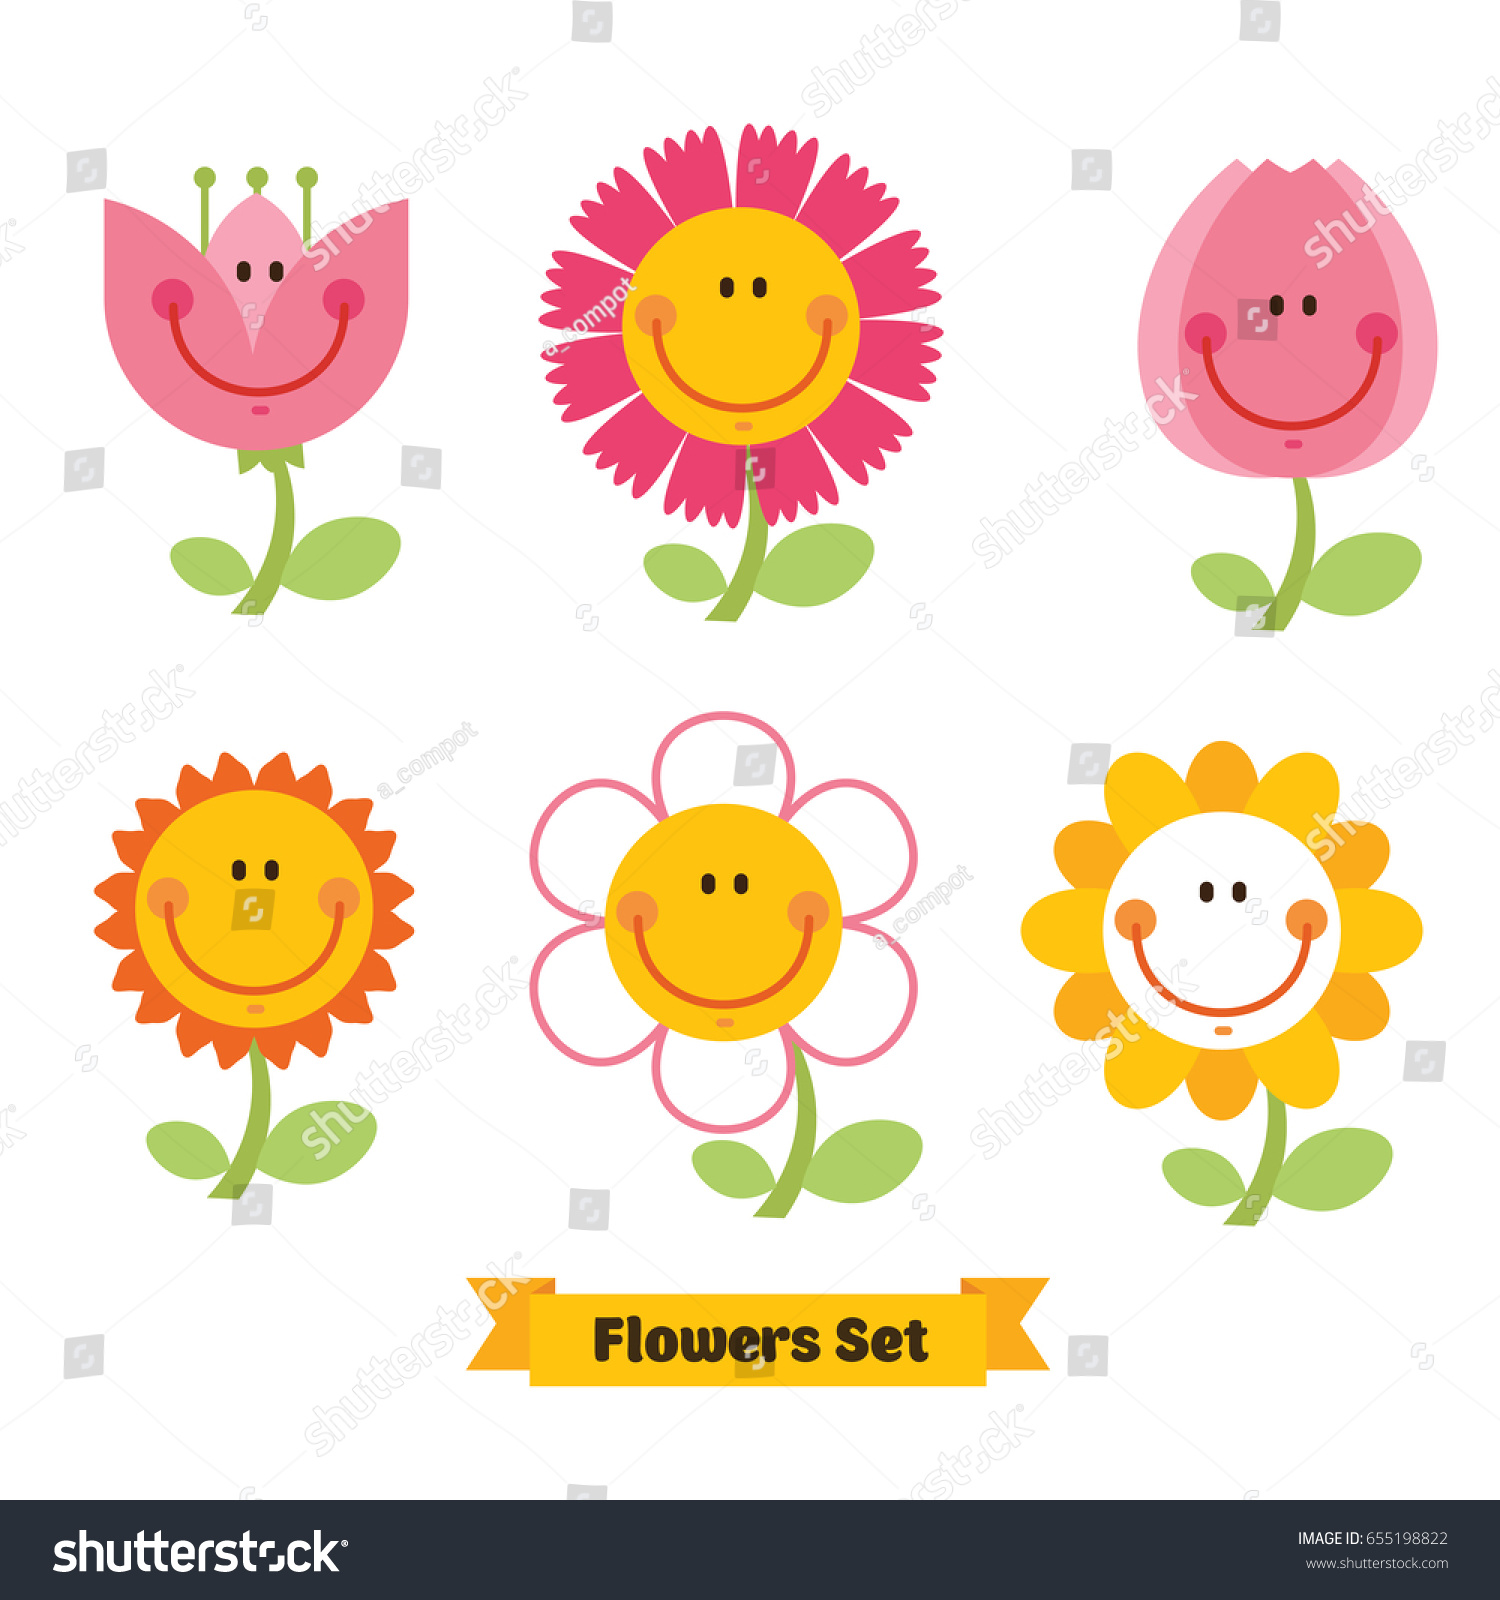 Cute flowers emoticon set funny smiley stock vector 655198822 cute flowers emoticon set funny smiley flowers happy doodles for your design bright izmirmasajfo